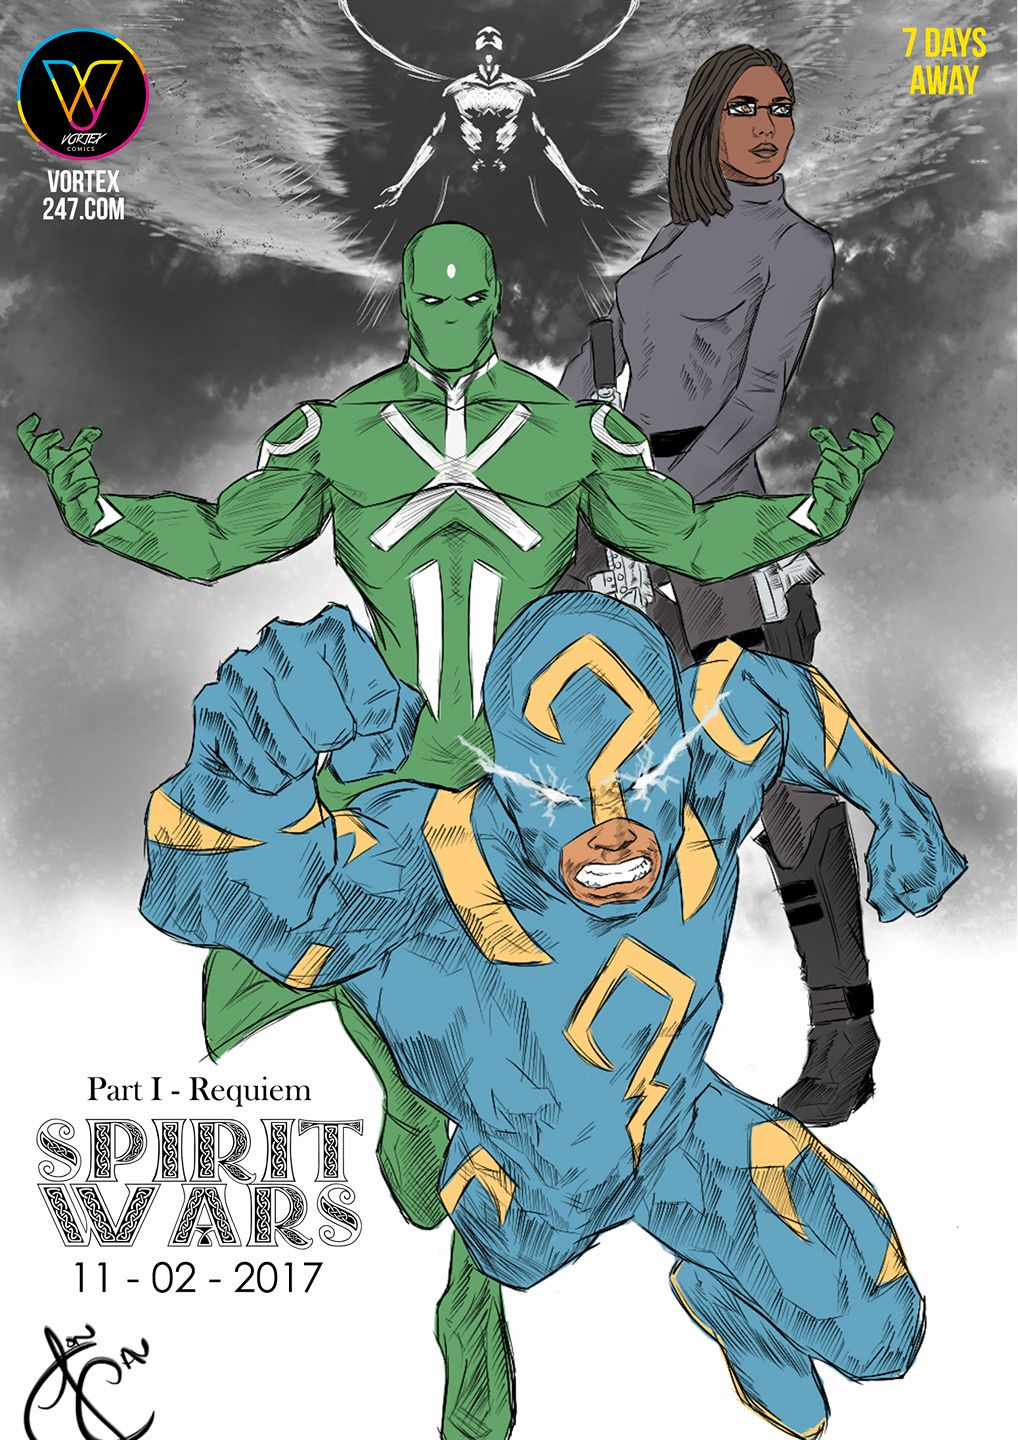 Spirit Wars poster featuring June 12, Strike Guard, Badgais and Moriach. Published by Vortex Comics with art by John Cavanaugh